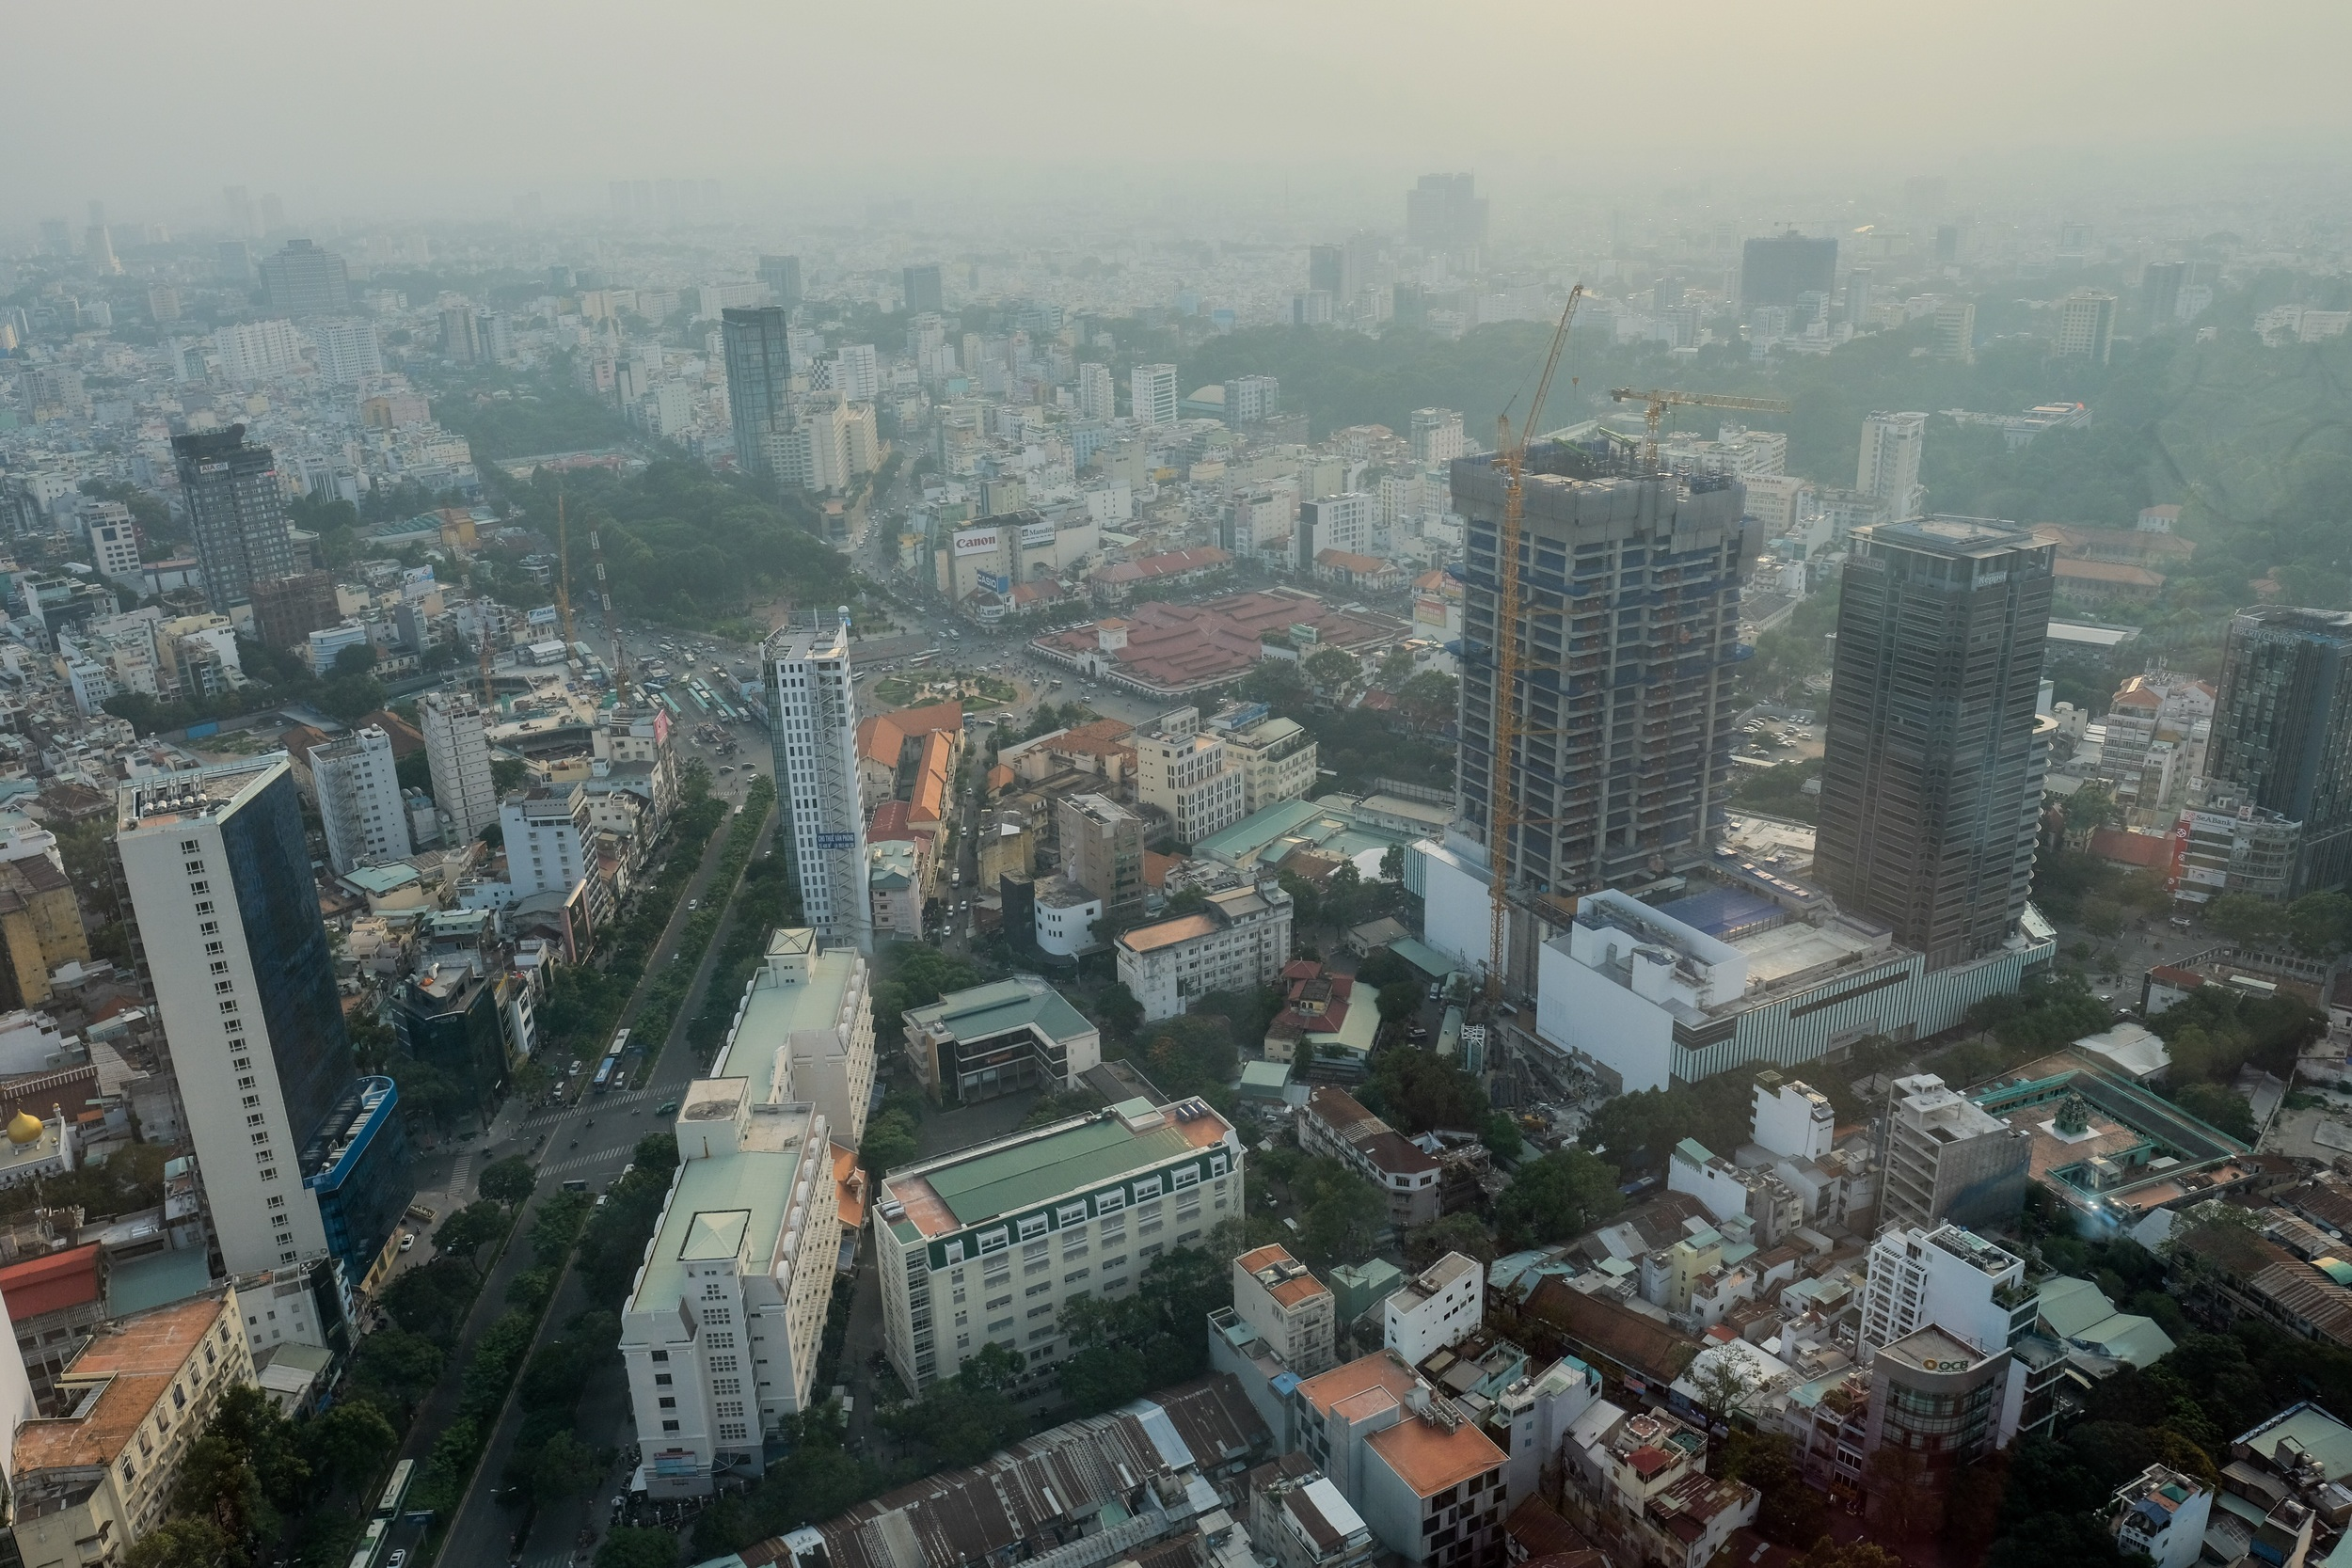 The western side of District 1, with Ben Thanh Market to the left of the building under construction and the backpacker area on Pham Ngu Lao and Bui Vien Street along the left side of the park .